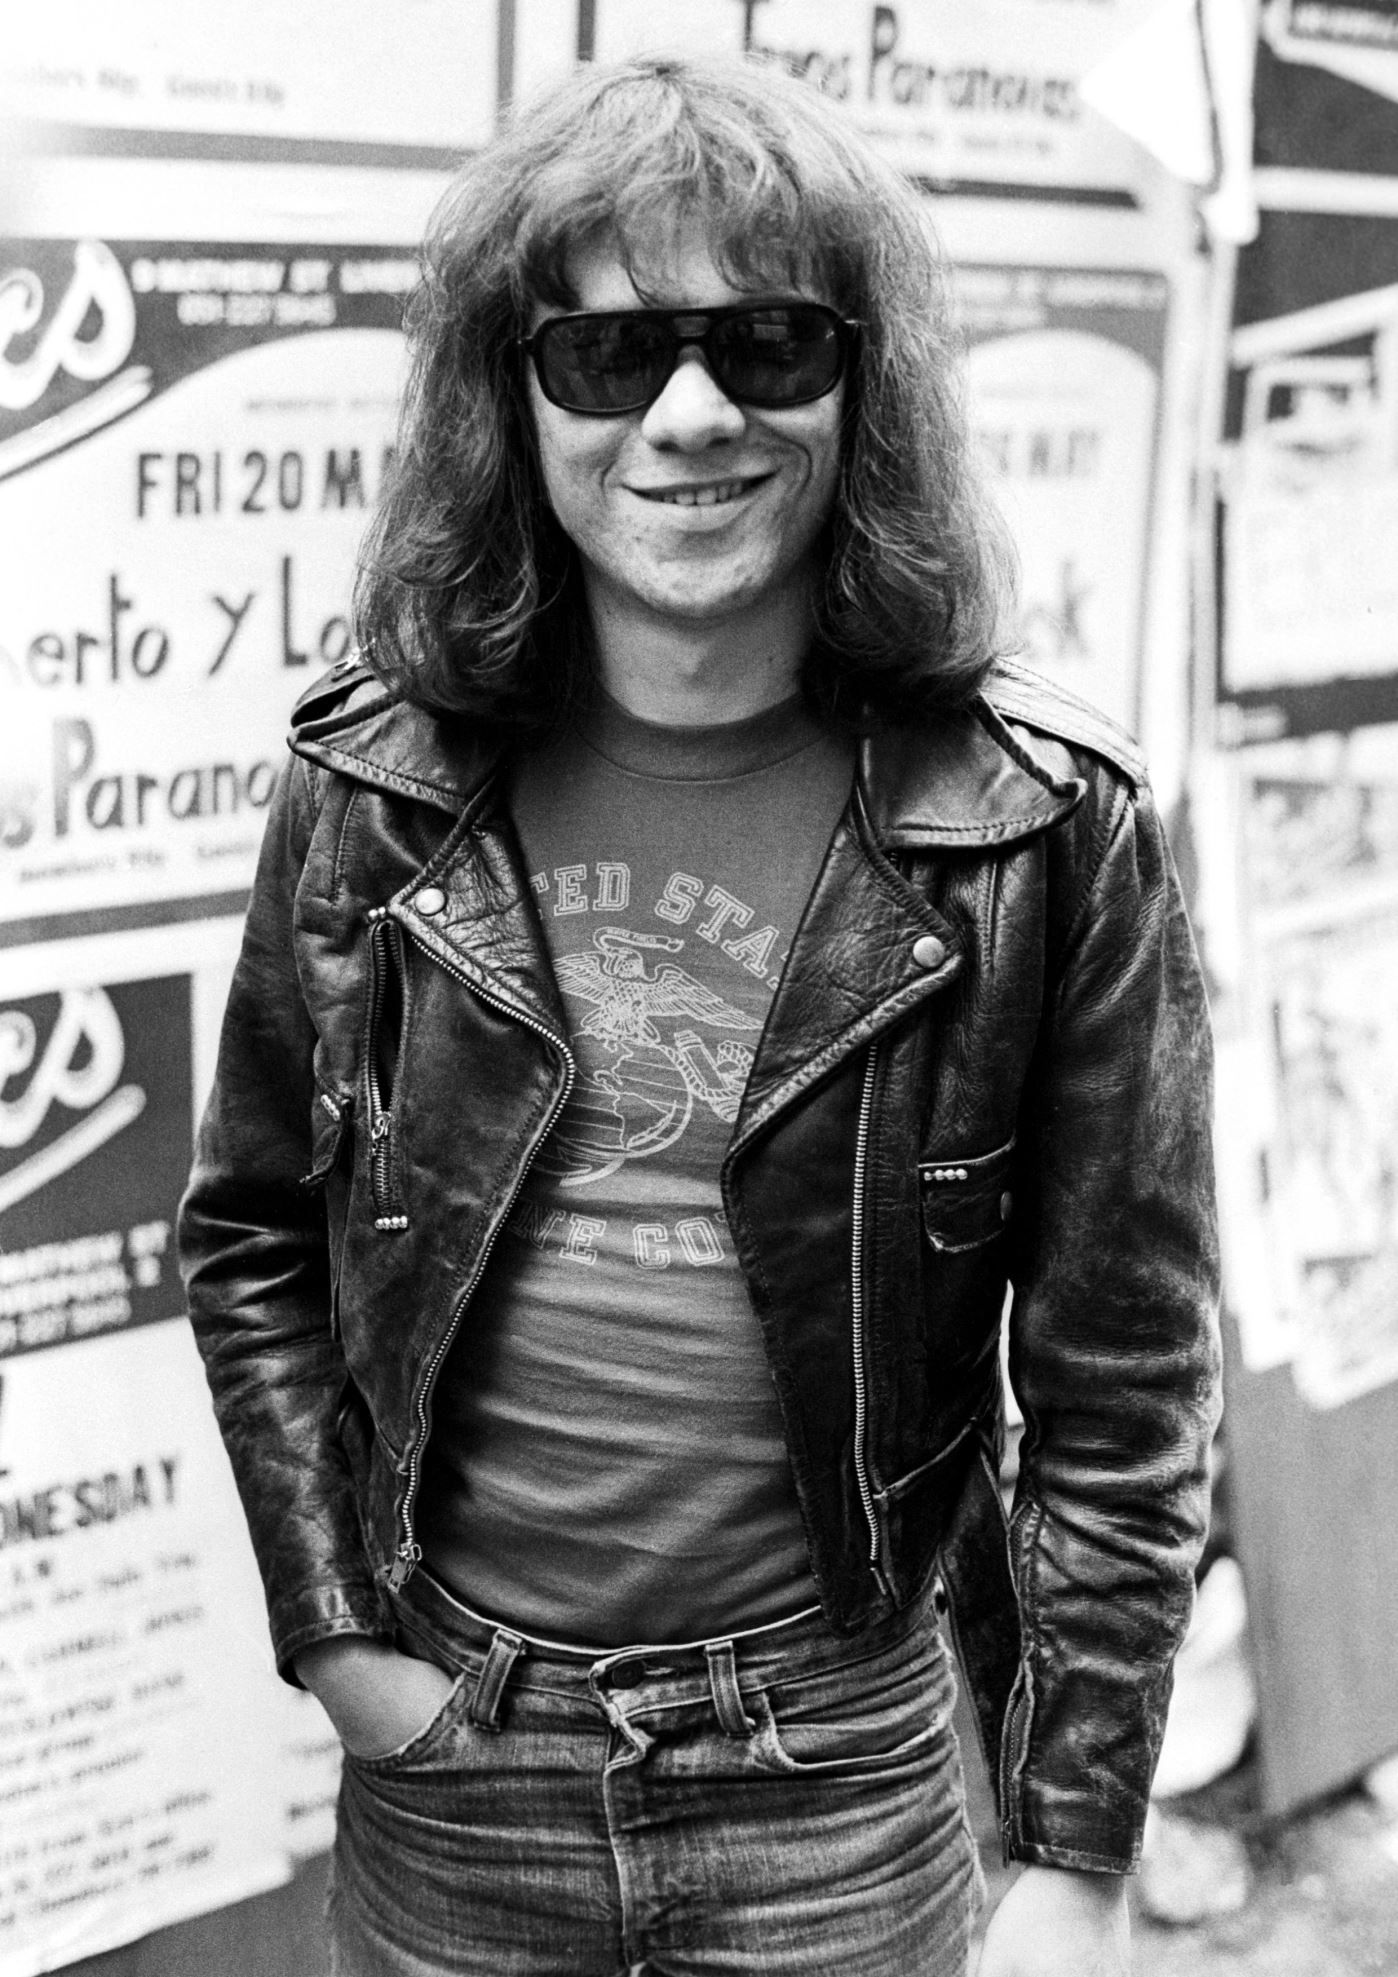 Drummer of the rock band Ramones died at the age of 65.